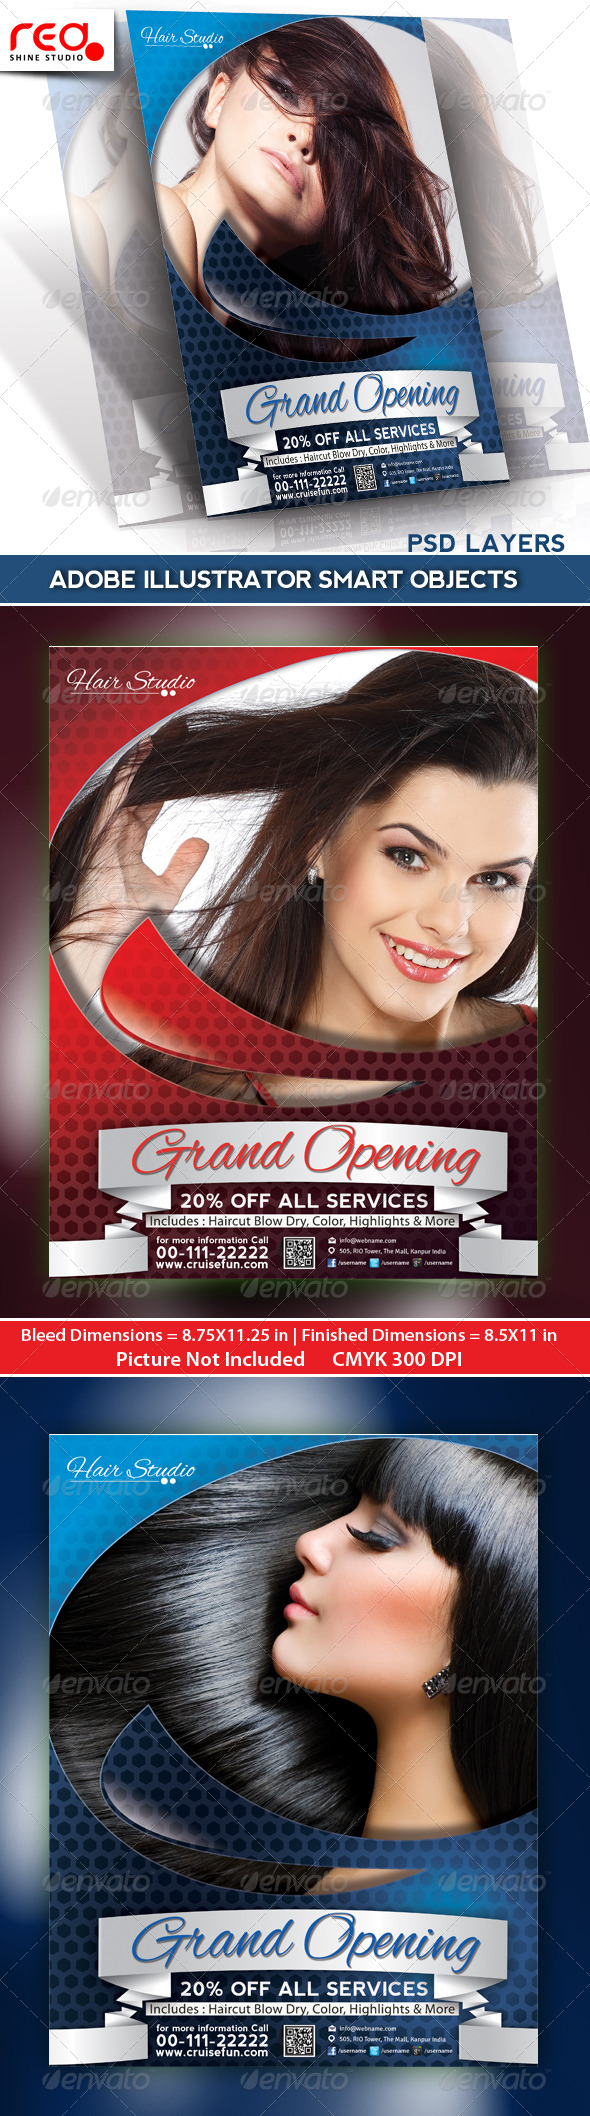 Hair Dresser Flyer/Poster Magazine Template  - Commerce Flyers